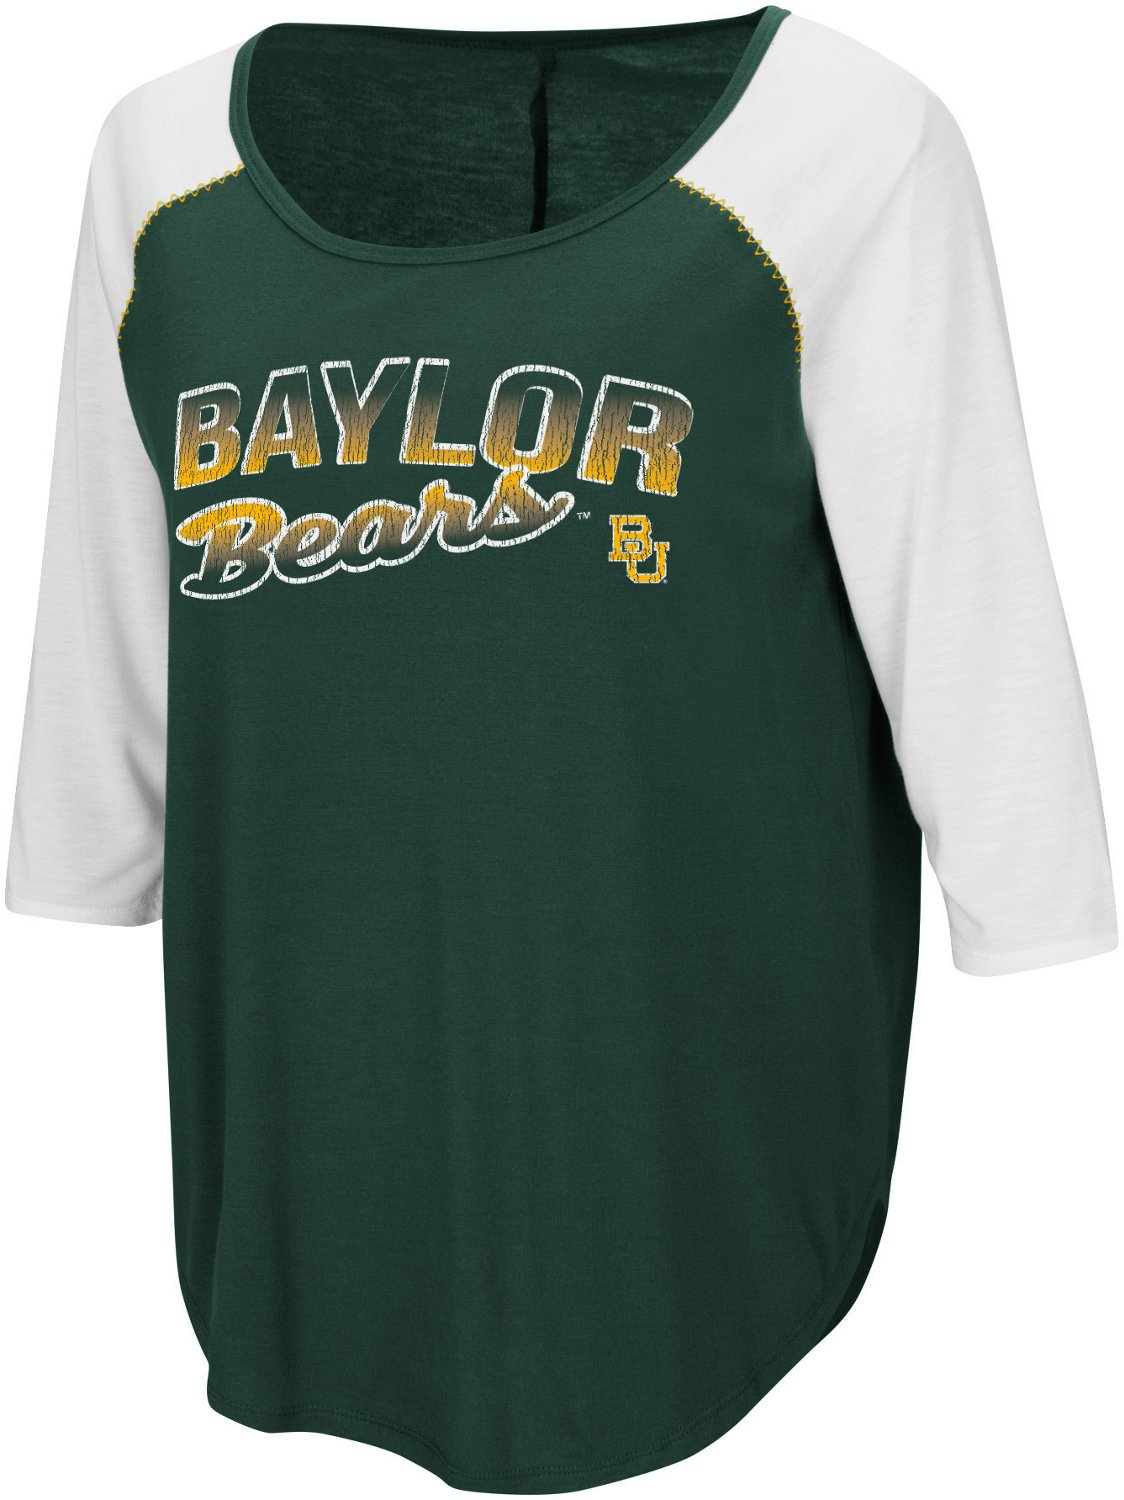 Colosseum Athletics Women's Baylor University Draw A Crowd Baseball T-shirt